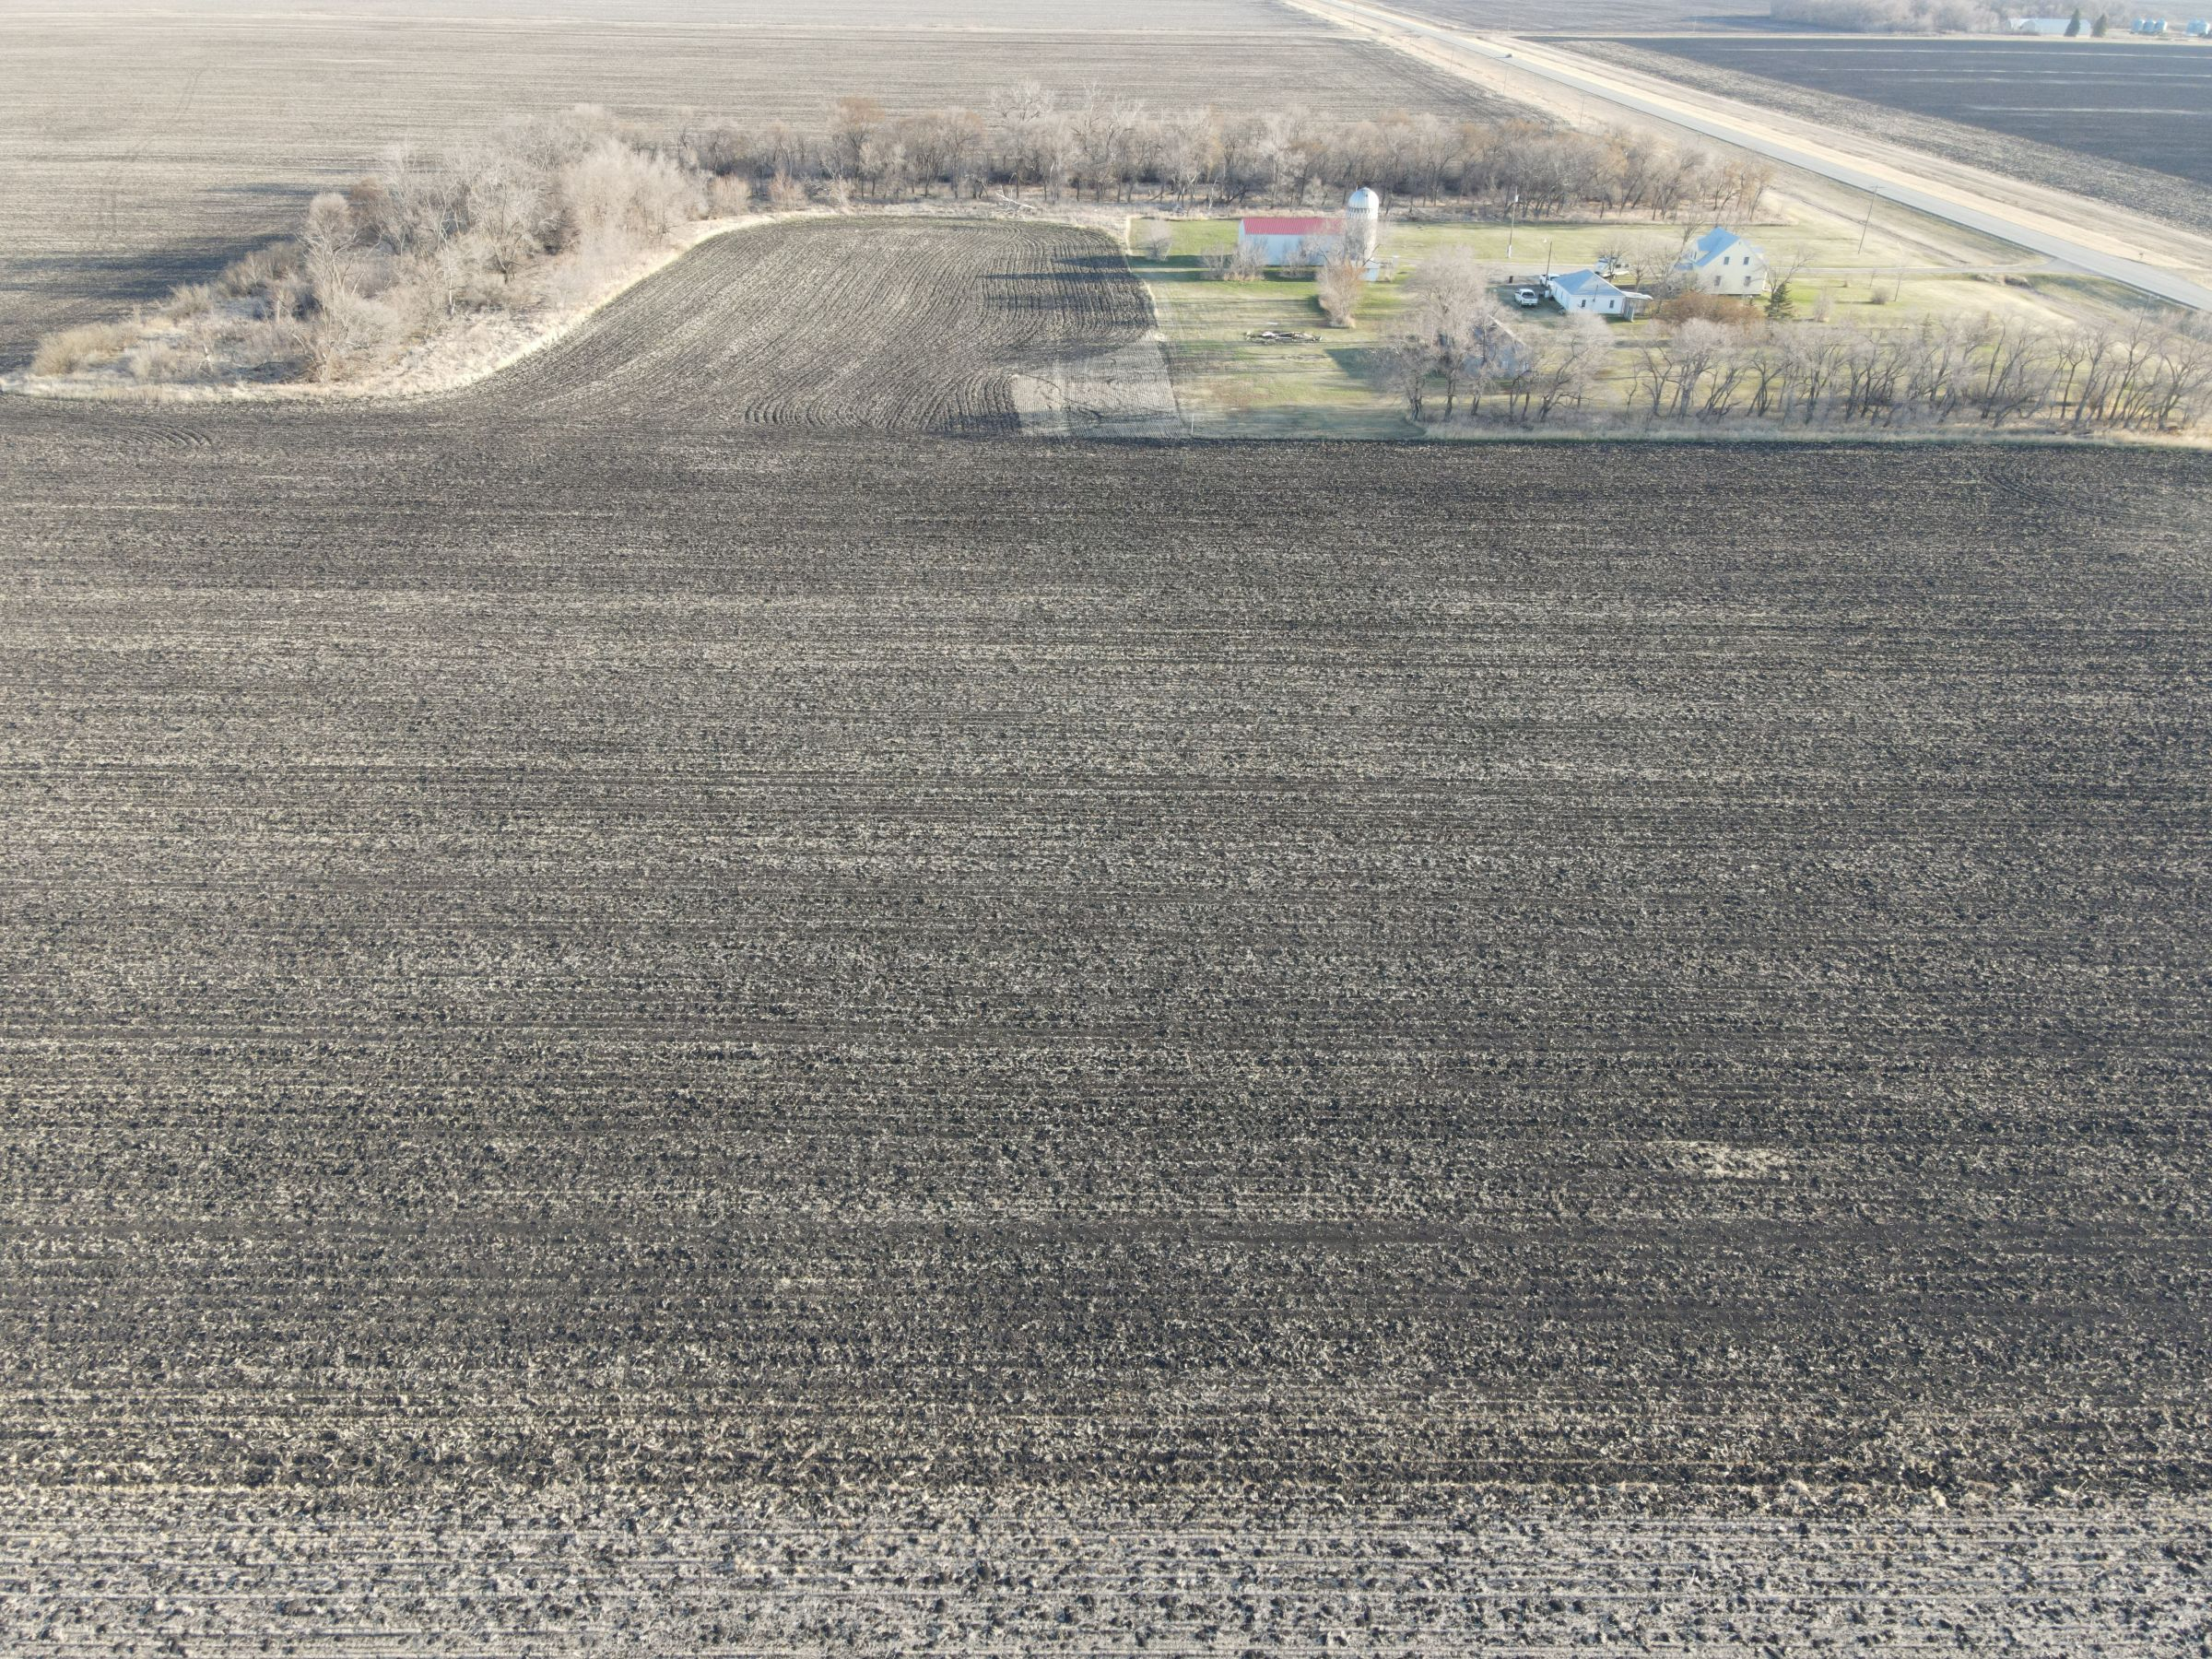 auctions-traill-county-north-dakota-74-acres-listing-number-15607-1-2021-06-22-202158.JPG